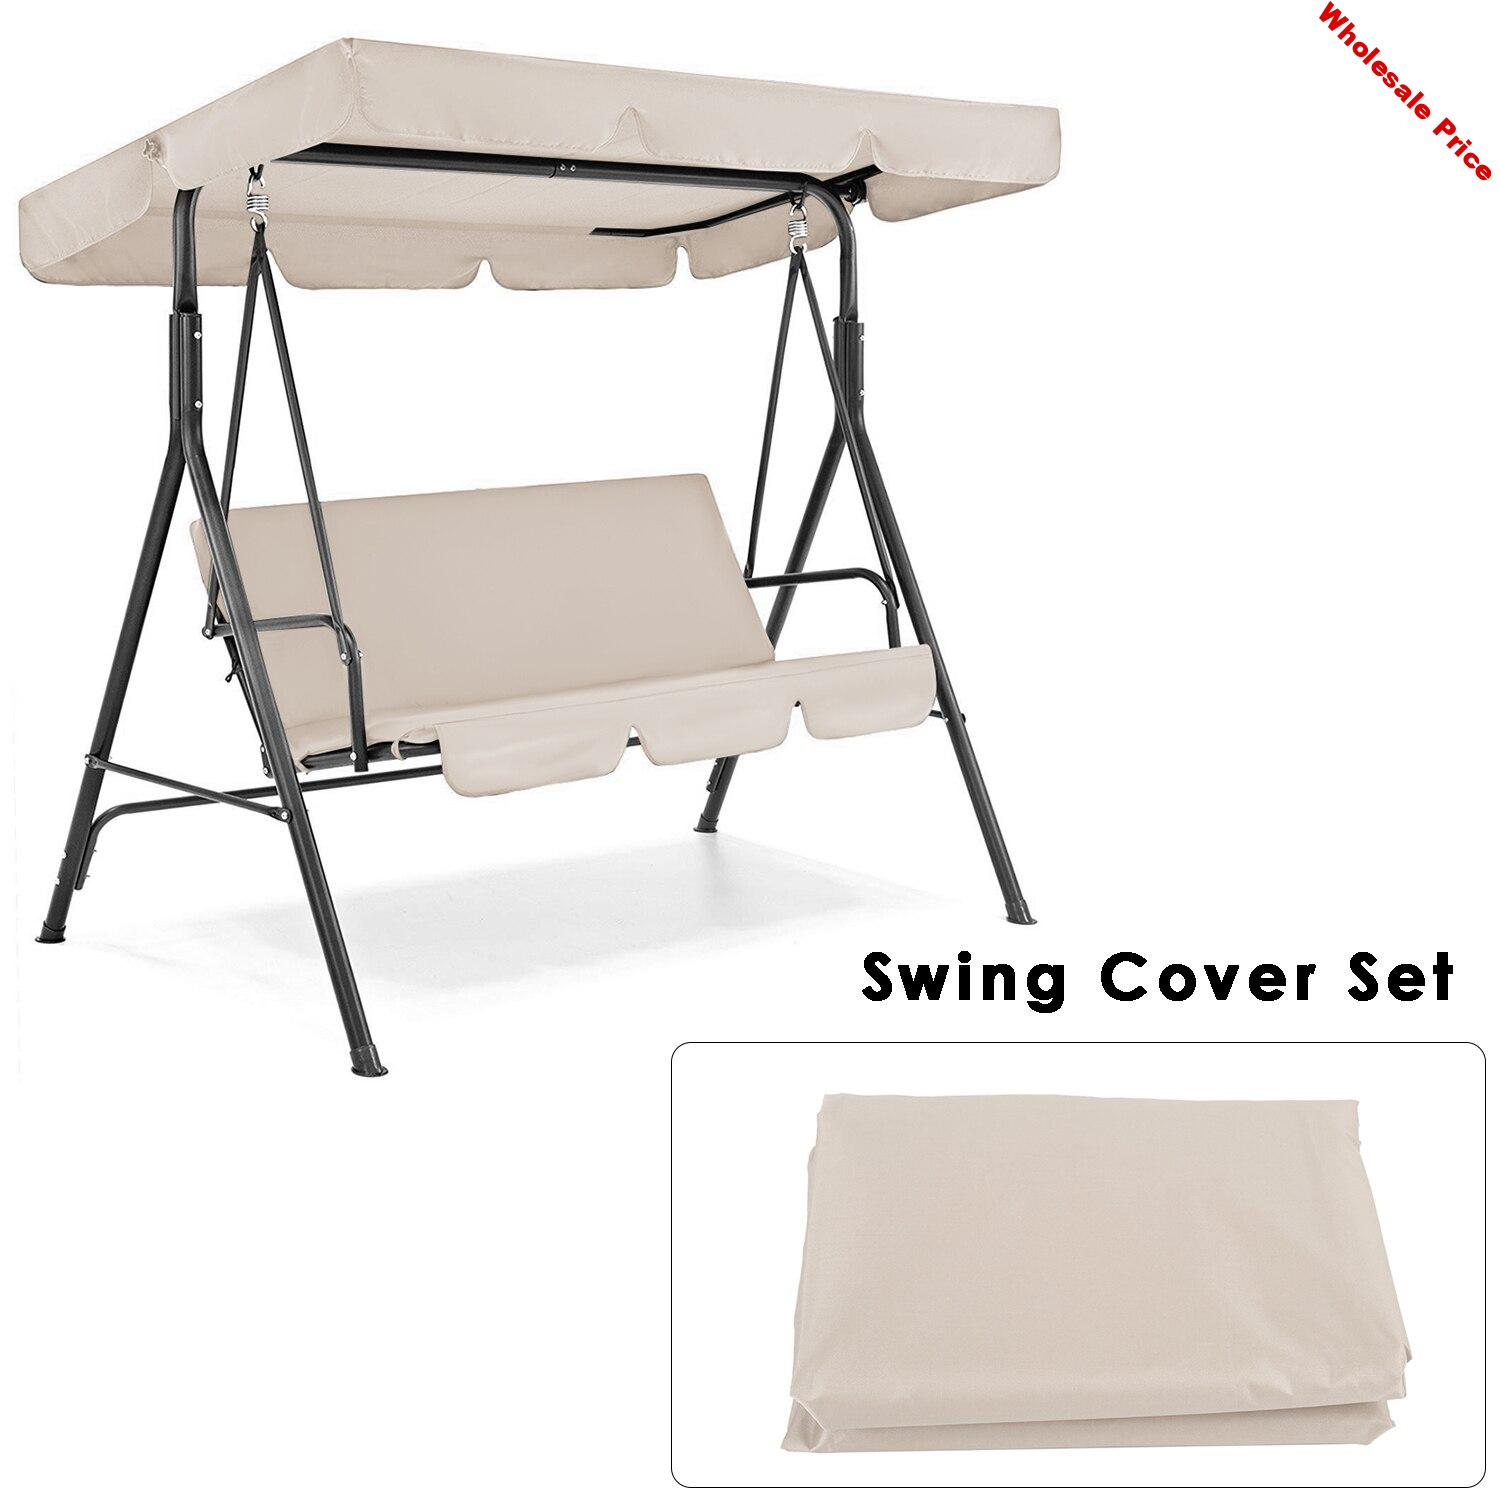 Patio Swing Cover Set Swing Canopy Replacement Cover Waterproof Porch Top Cover For Patio Yard Seat Chair Dust Cover